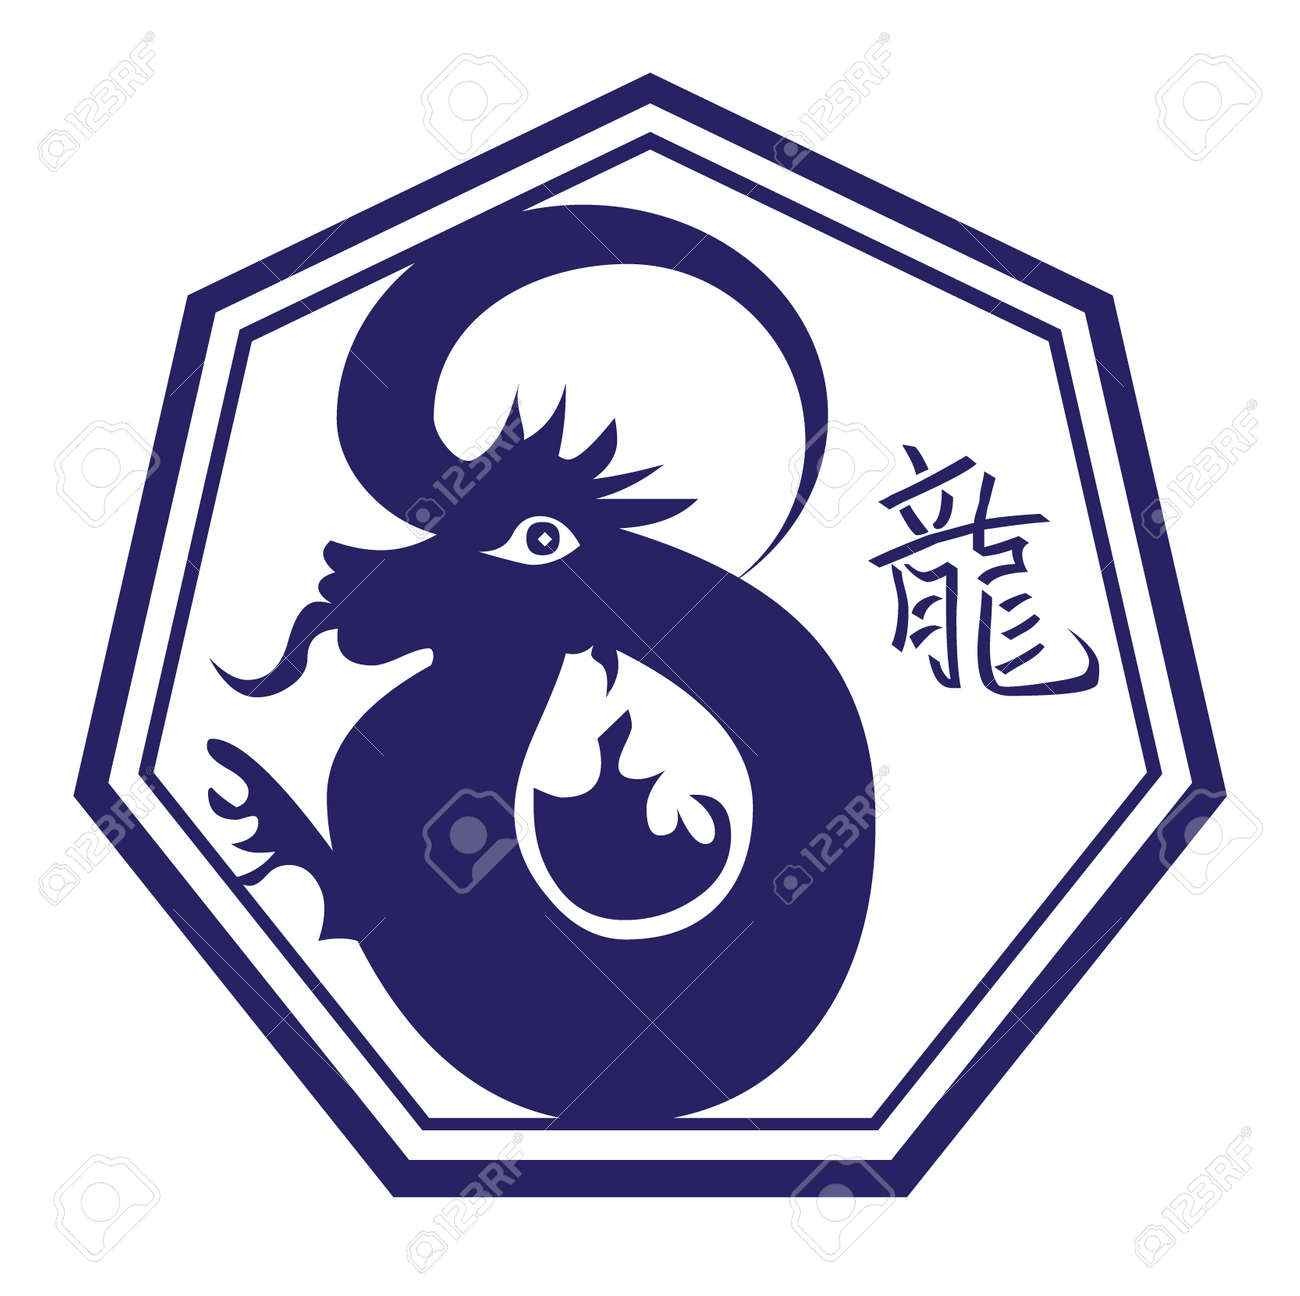 df6096d85 Chinese Zodiac Year Of The Dragon Icon Royalty Free Cliparts ...